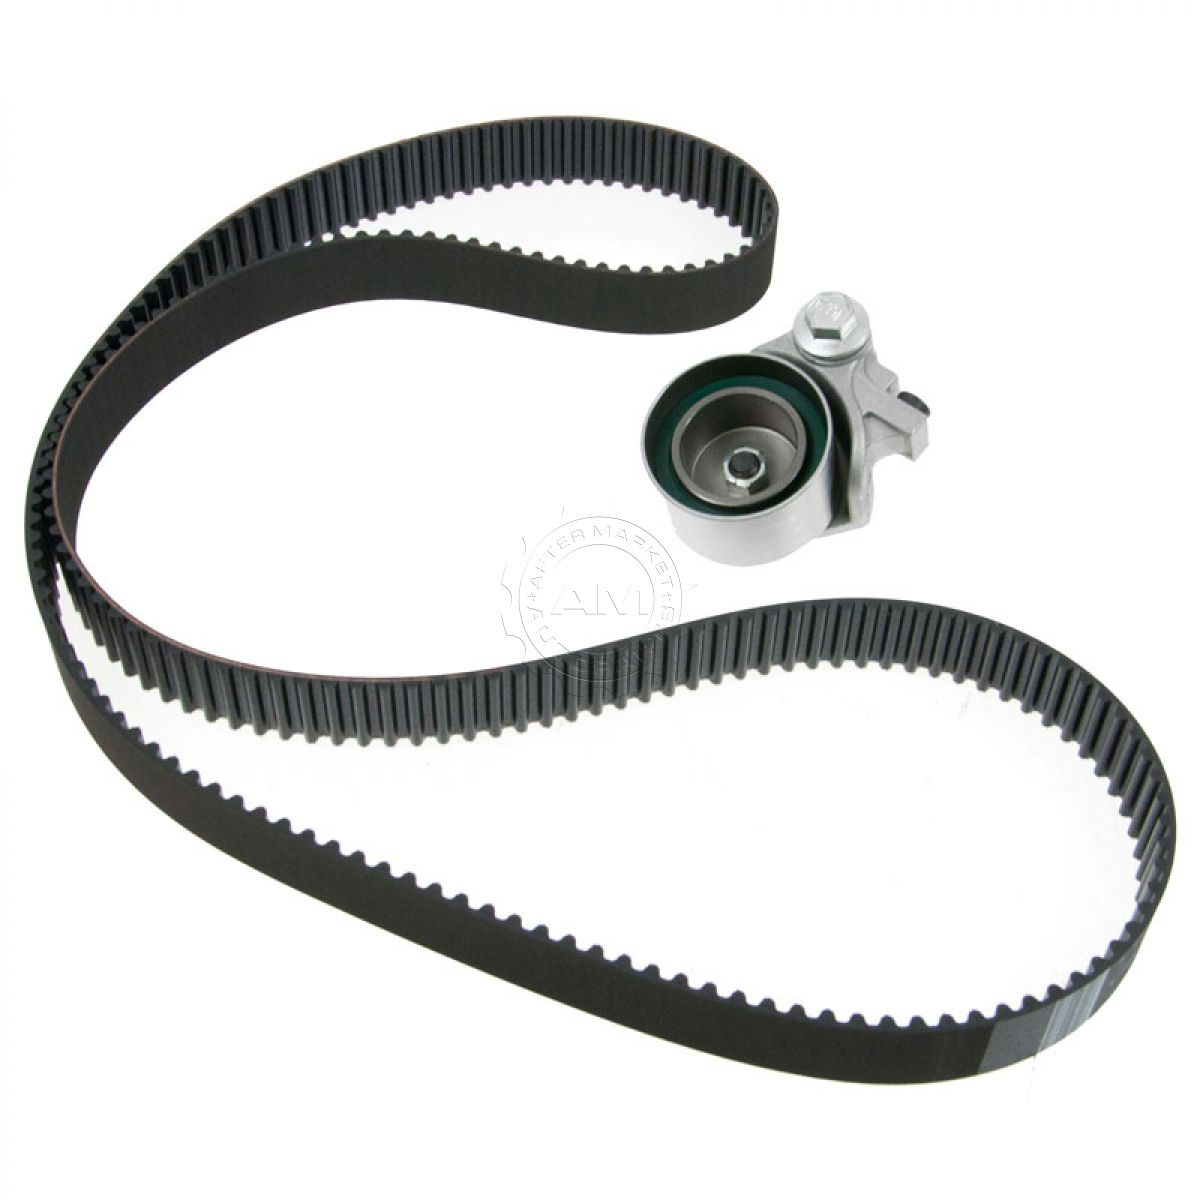 2001 Chrysler Concorde Engine Parts 2003 Diagram Car And Component Gates Timing Belt Kit For Concord Intrepid Lhs 1200x1200